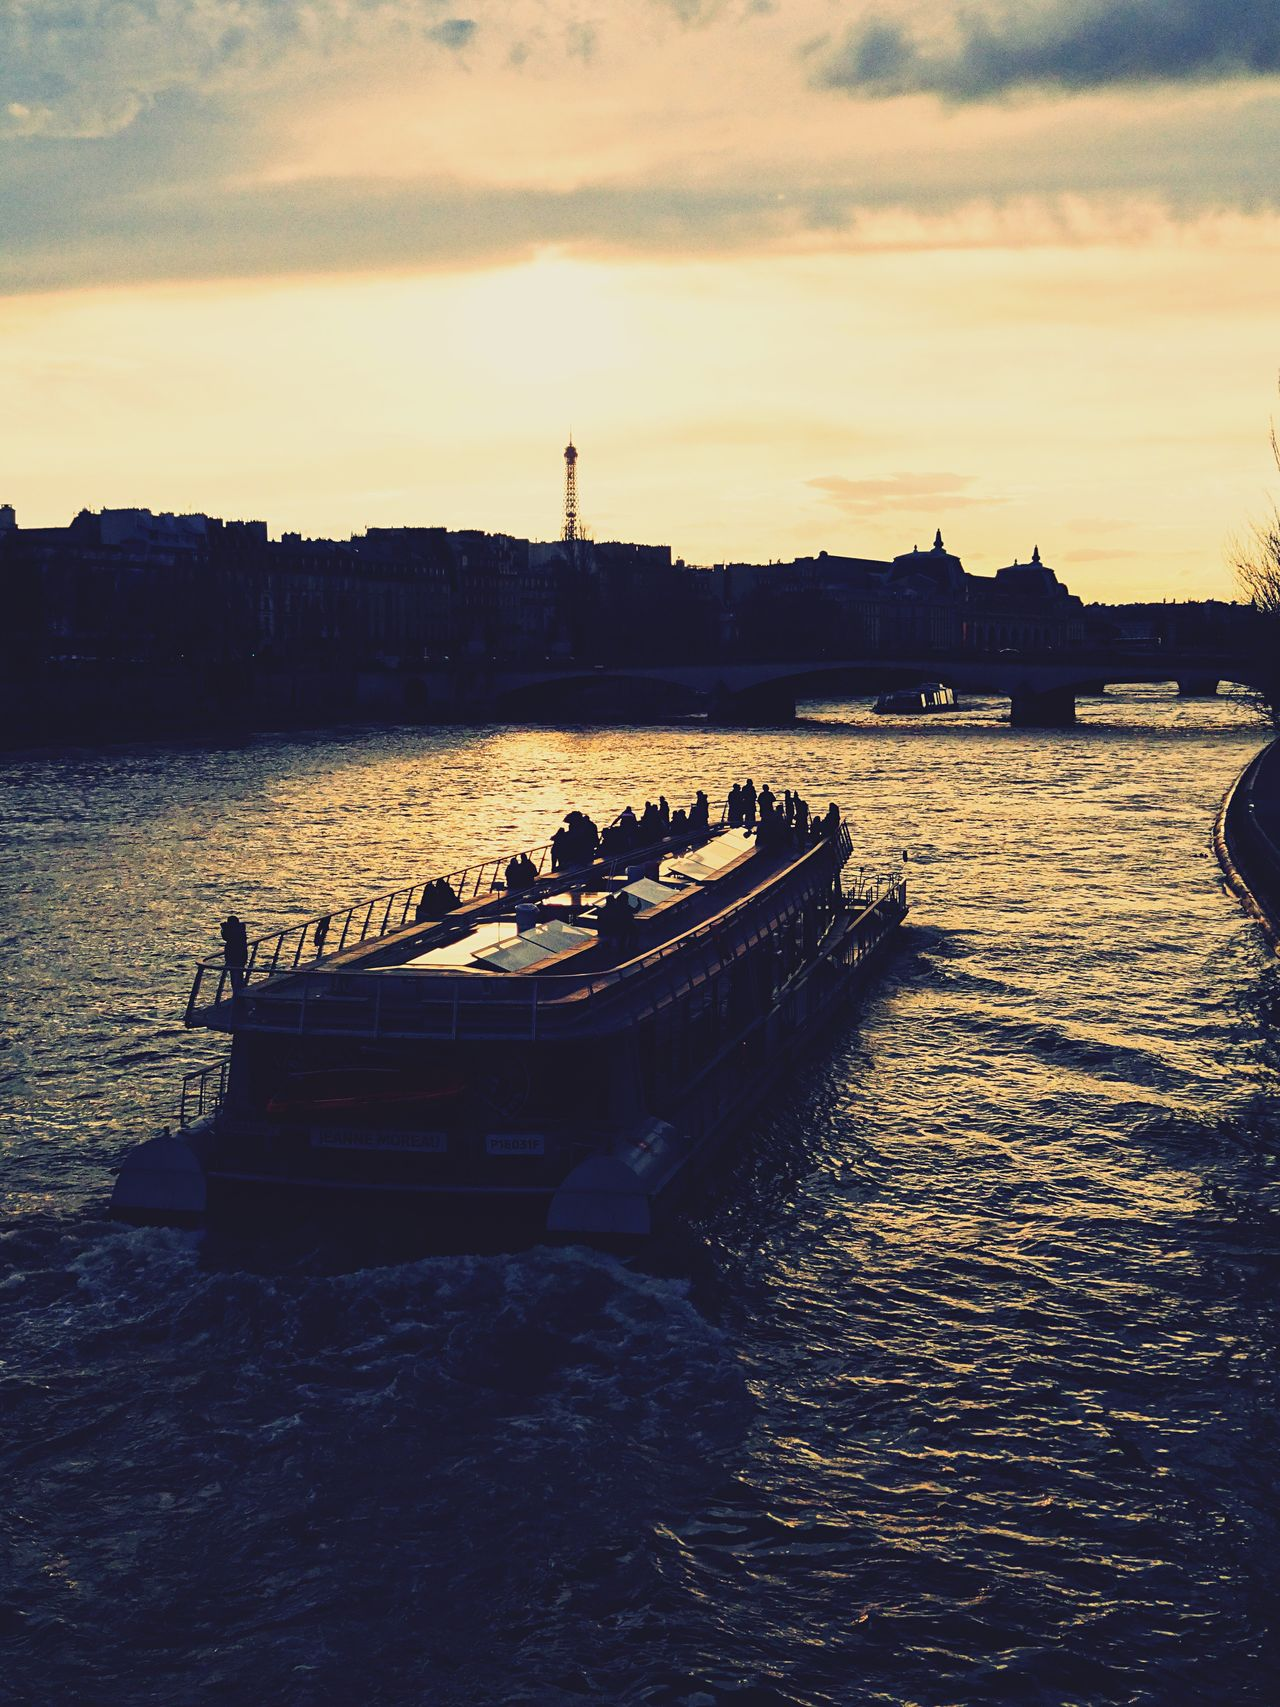 Paris Water River Seine Laseine Sunset Sunset_collection Eiffel Tower Eiffeltower Tour Eiffel Boat Good Times Evening Evening Sky Chasinglight Chasing Light Showcase April Eyeemphoto